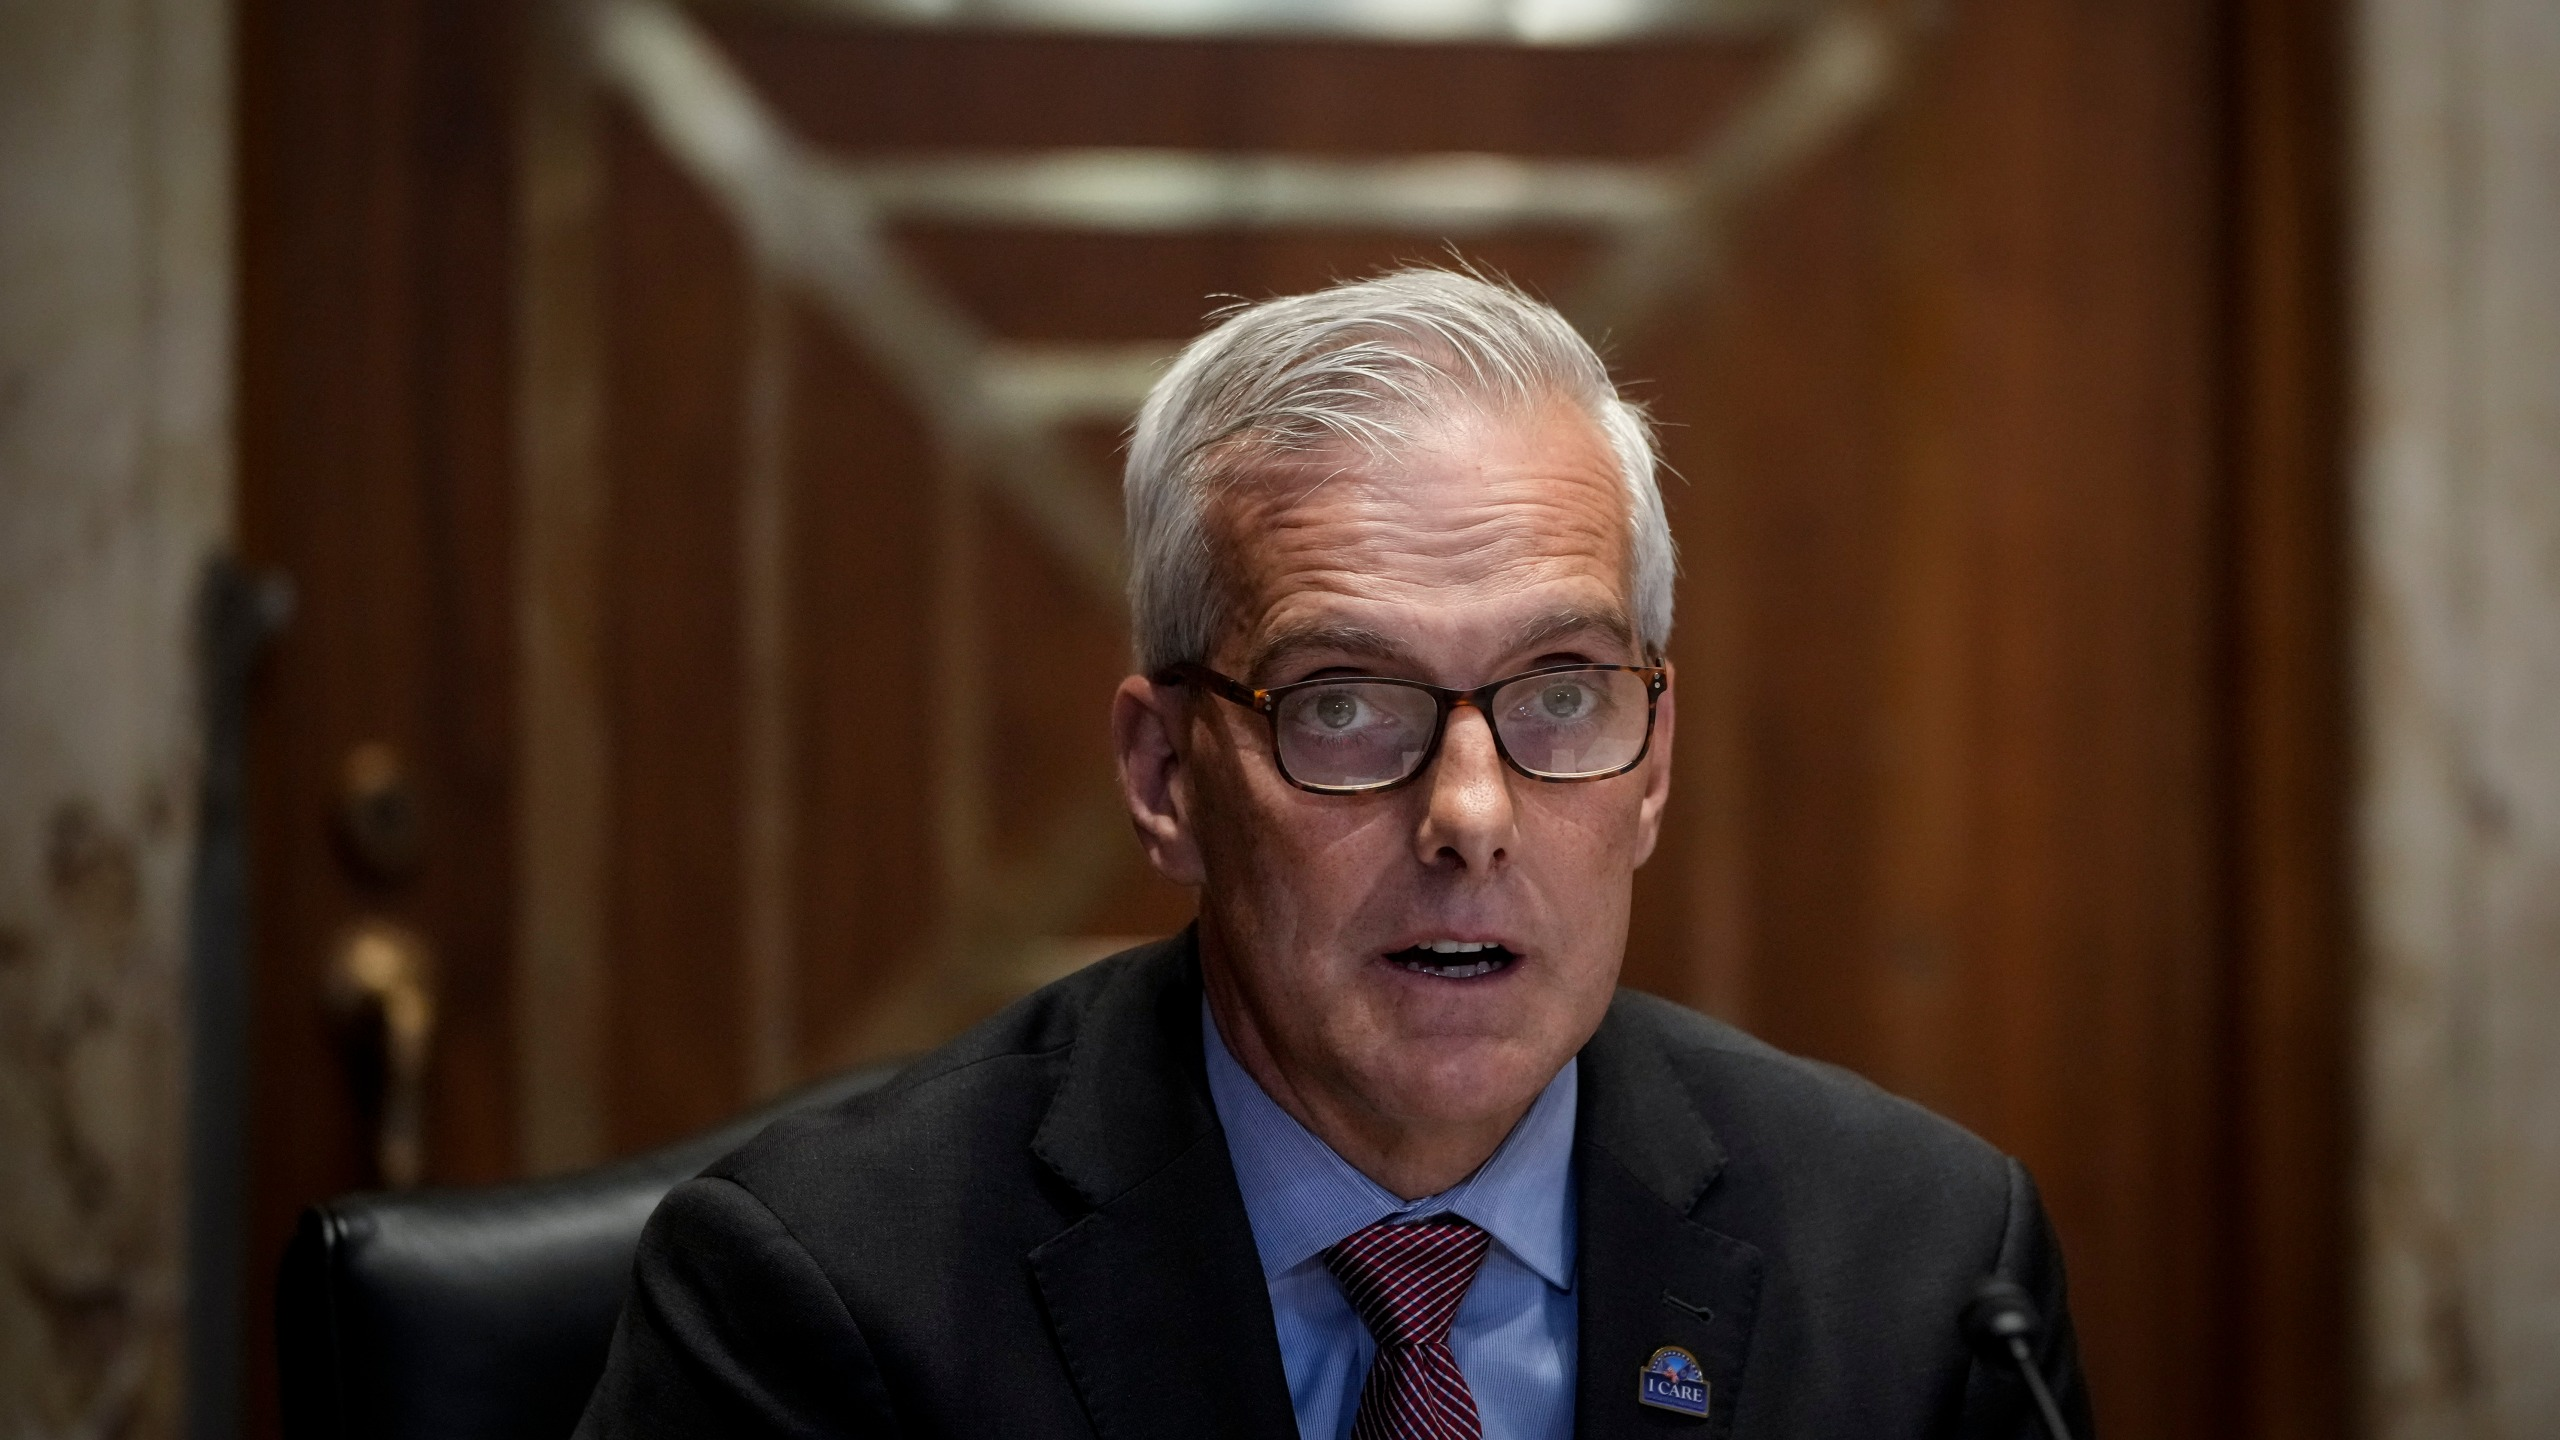 Secretary of Veterans Affairs Denis McDonough testifies during a Senate Appropriations Committee hearing on the fiscal year 2022 budget request for the Department of Veterans Affairs on Capitol Hill June 23, 2021 in Washington, DC. (Drew Angerer/Getty Images)